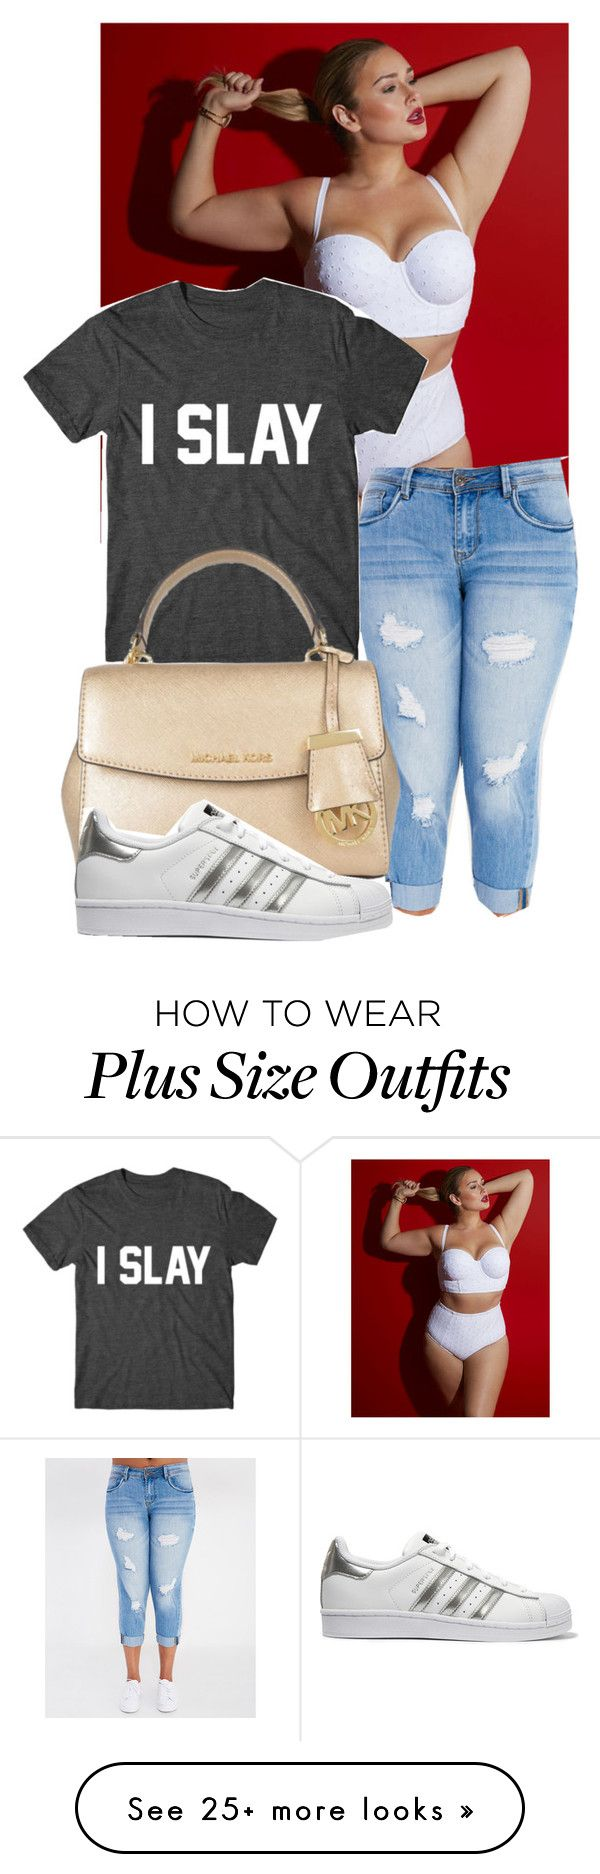 """Plus size girls do it better"" by fashionkillashe on Polyvore featuring Lela Rose, MICHAEL Michael Kors and adidas Originals"